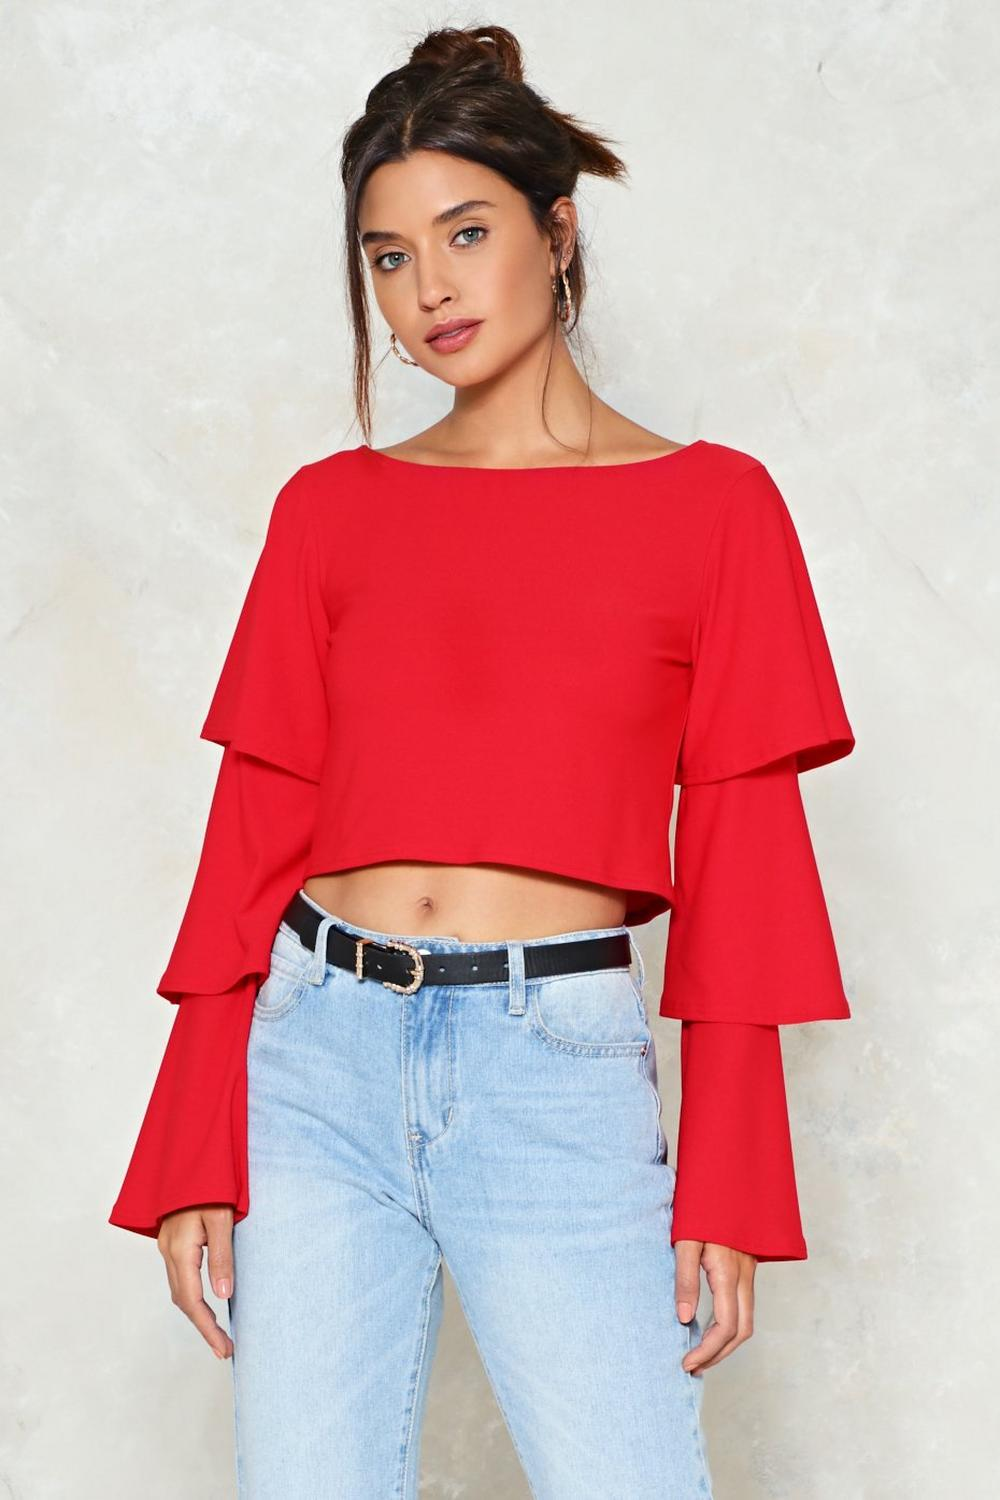 652f1e30afa Tier Me Out Ruffle Crop Top | Shop Clothes at Nasty Gal!